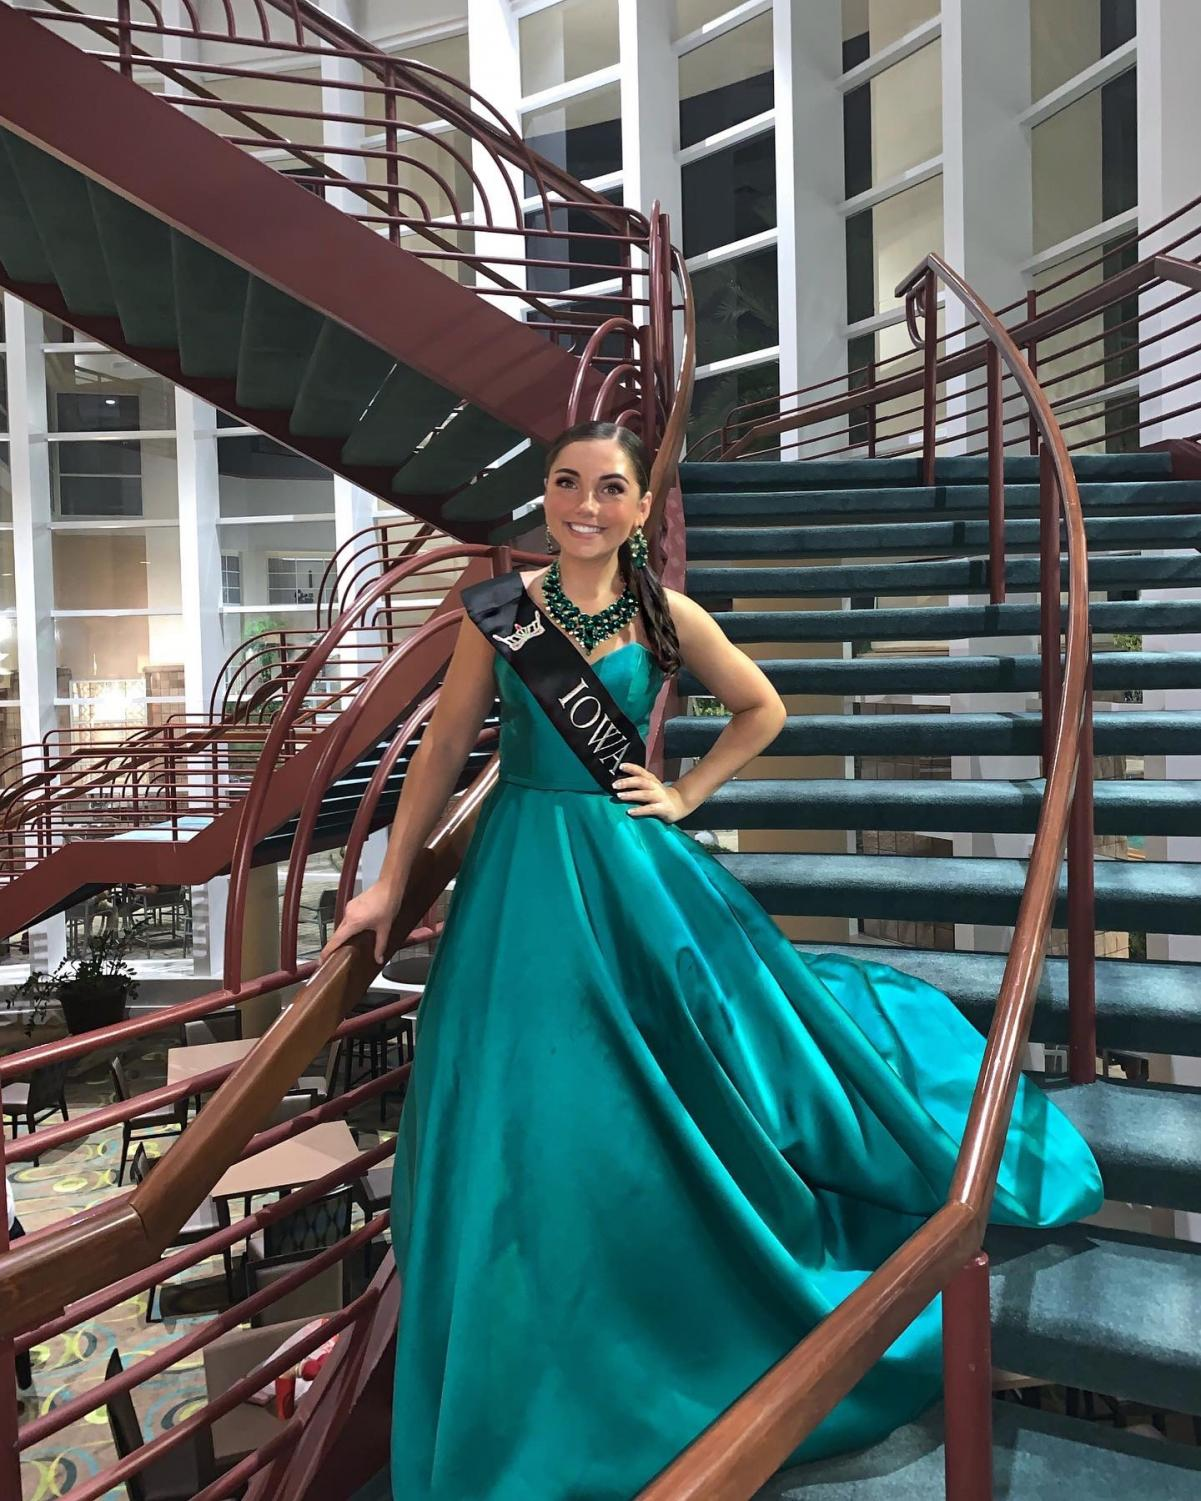 Caitlin Crome poses at the Miss America pageant in Orlando, Fla. in July, one month after she was crowned Miss Iowa's Outstanding Teen.